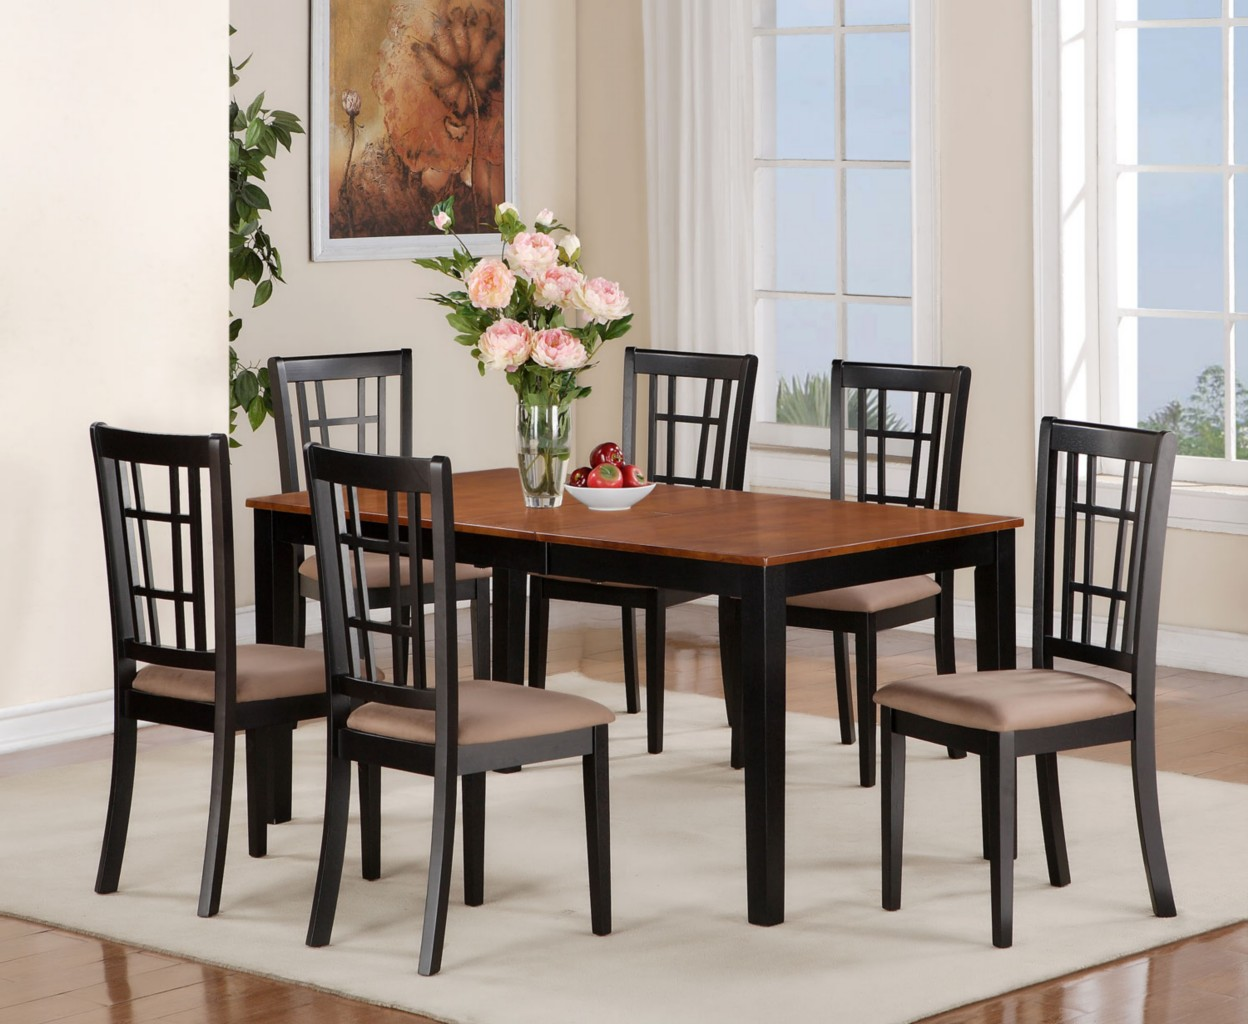 5pc dinette kitchen dining set rectangular table 4 chairs in black cherry ebay. Black Bedroom Furniture Sets. Home Design Ideas